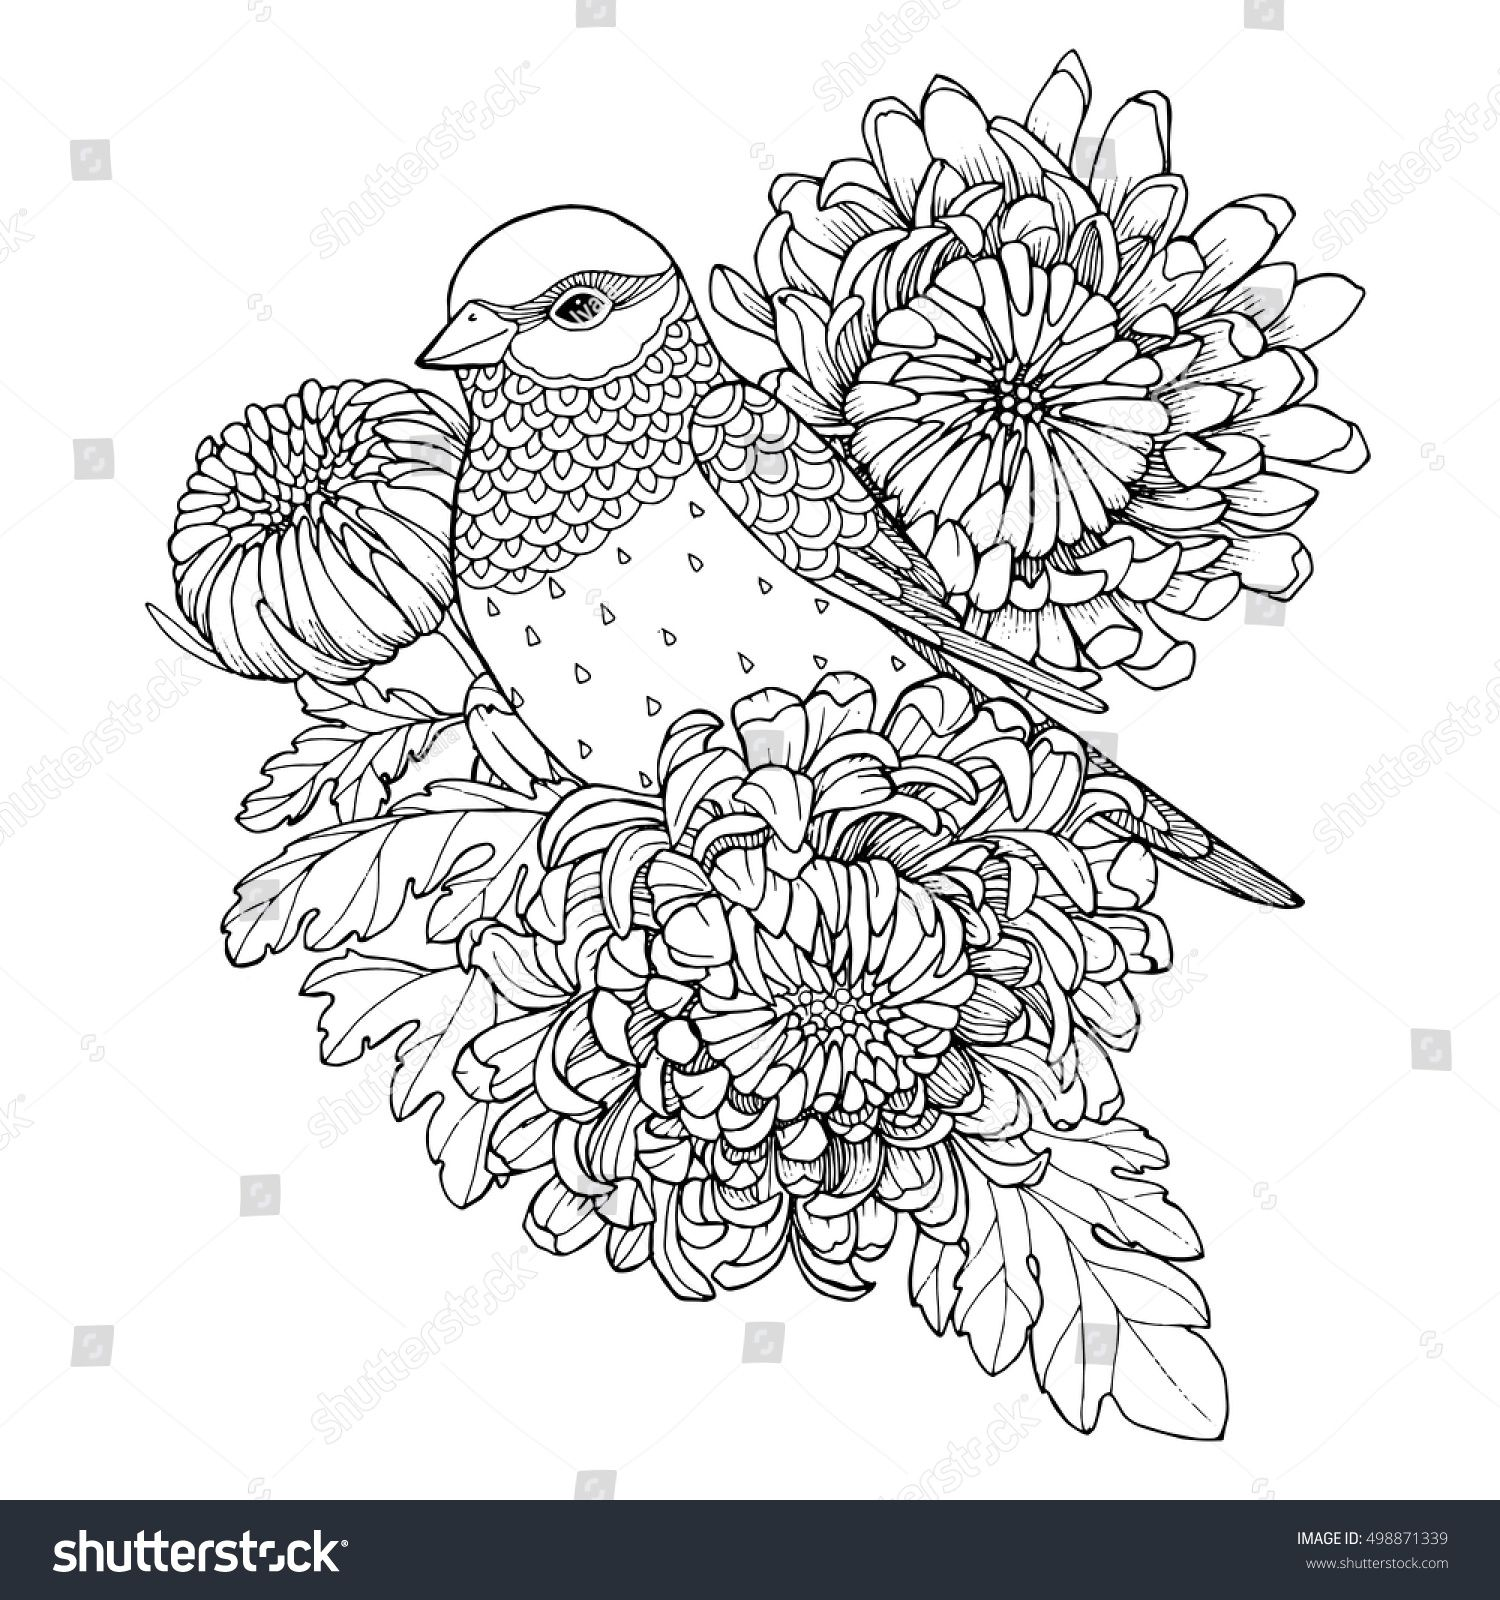 Patterned bird, sitting on chrysanthemum branch, zentangle page for ...